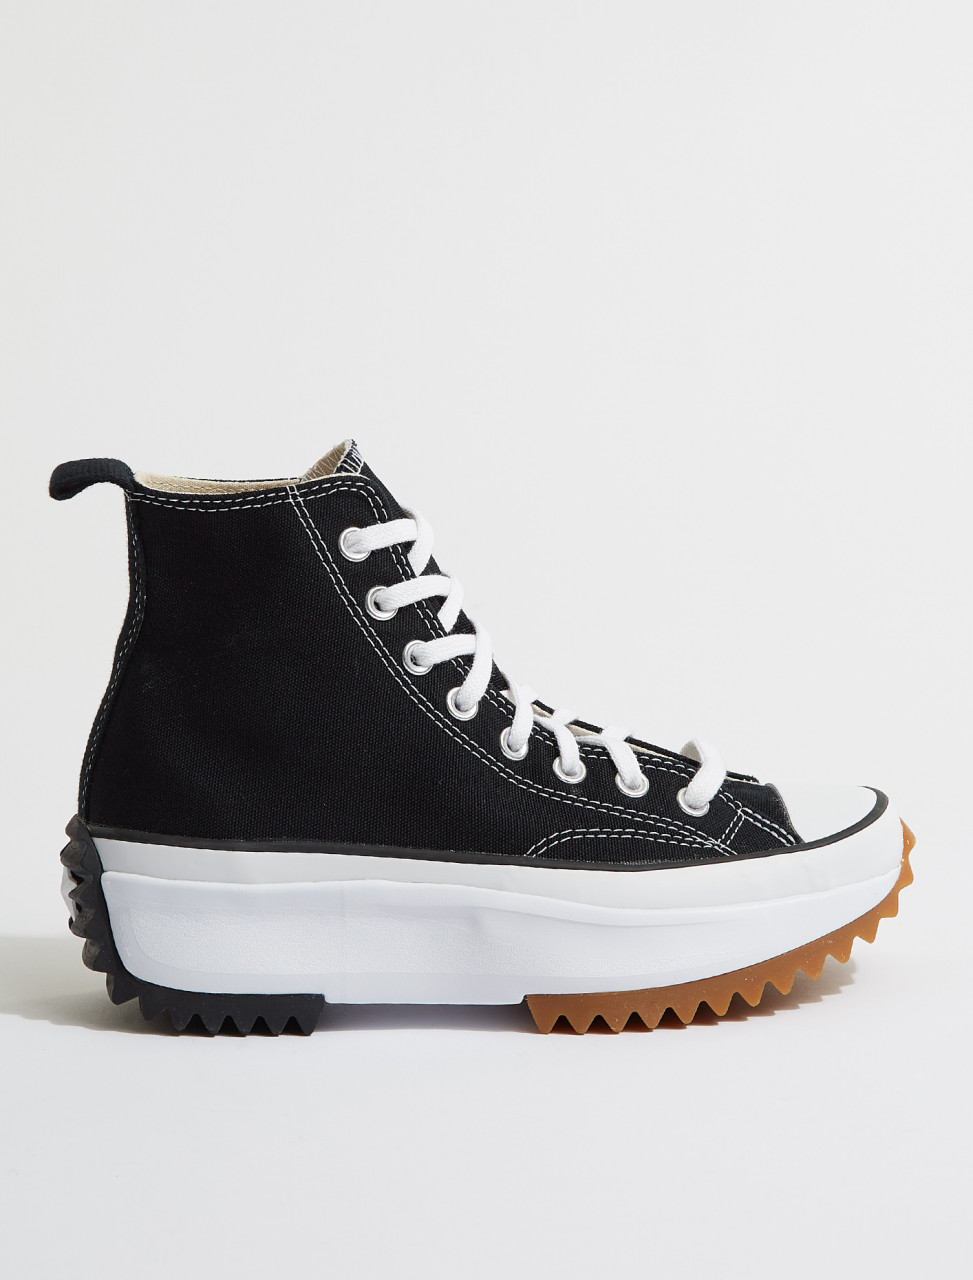 166800C CONVERSE Run Star Hike High in Black & White